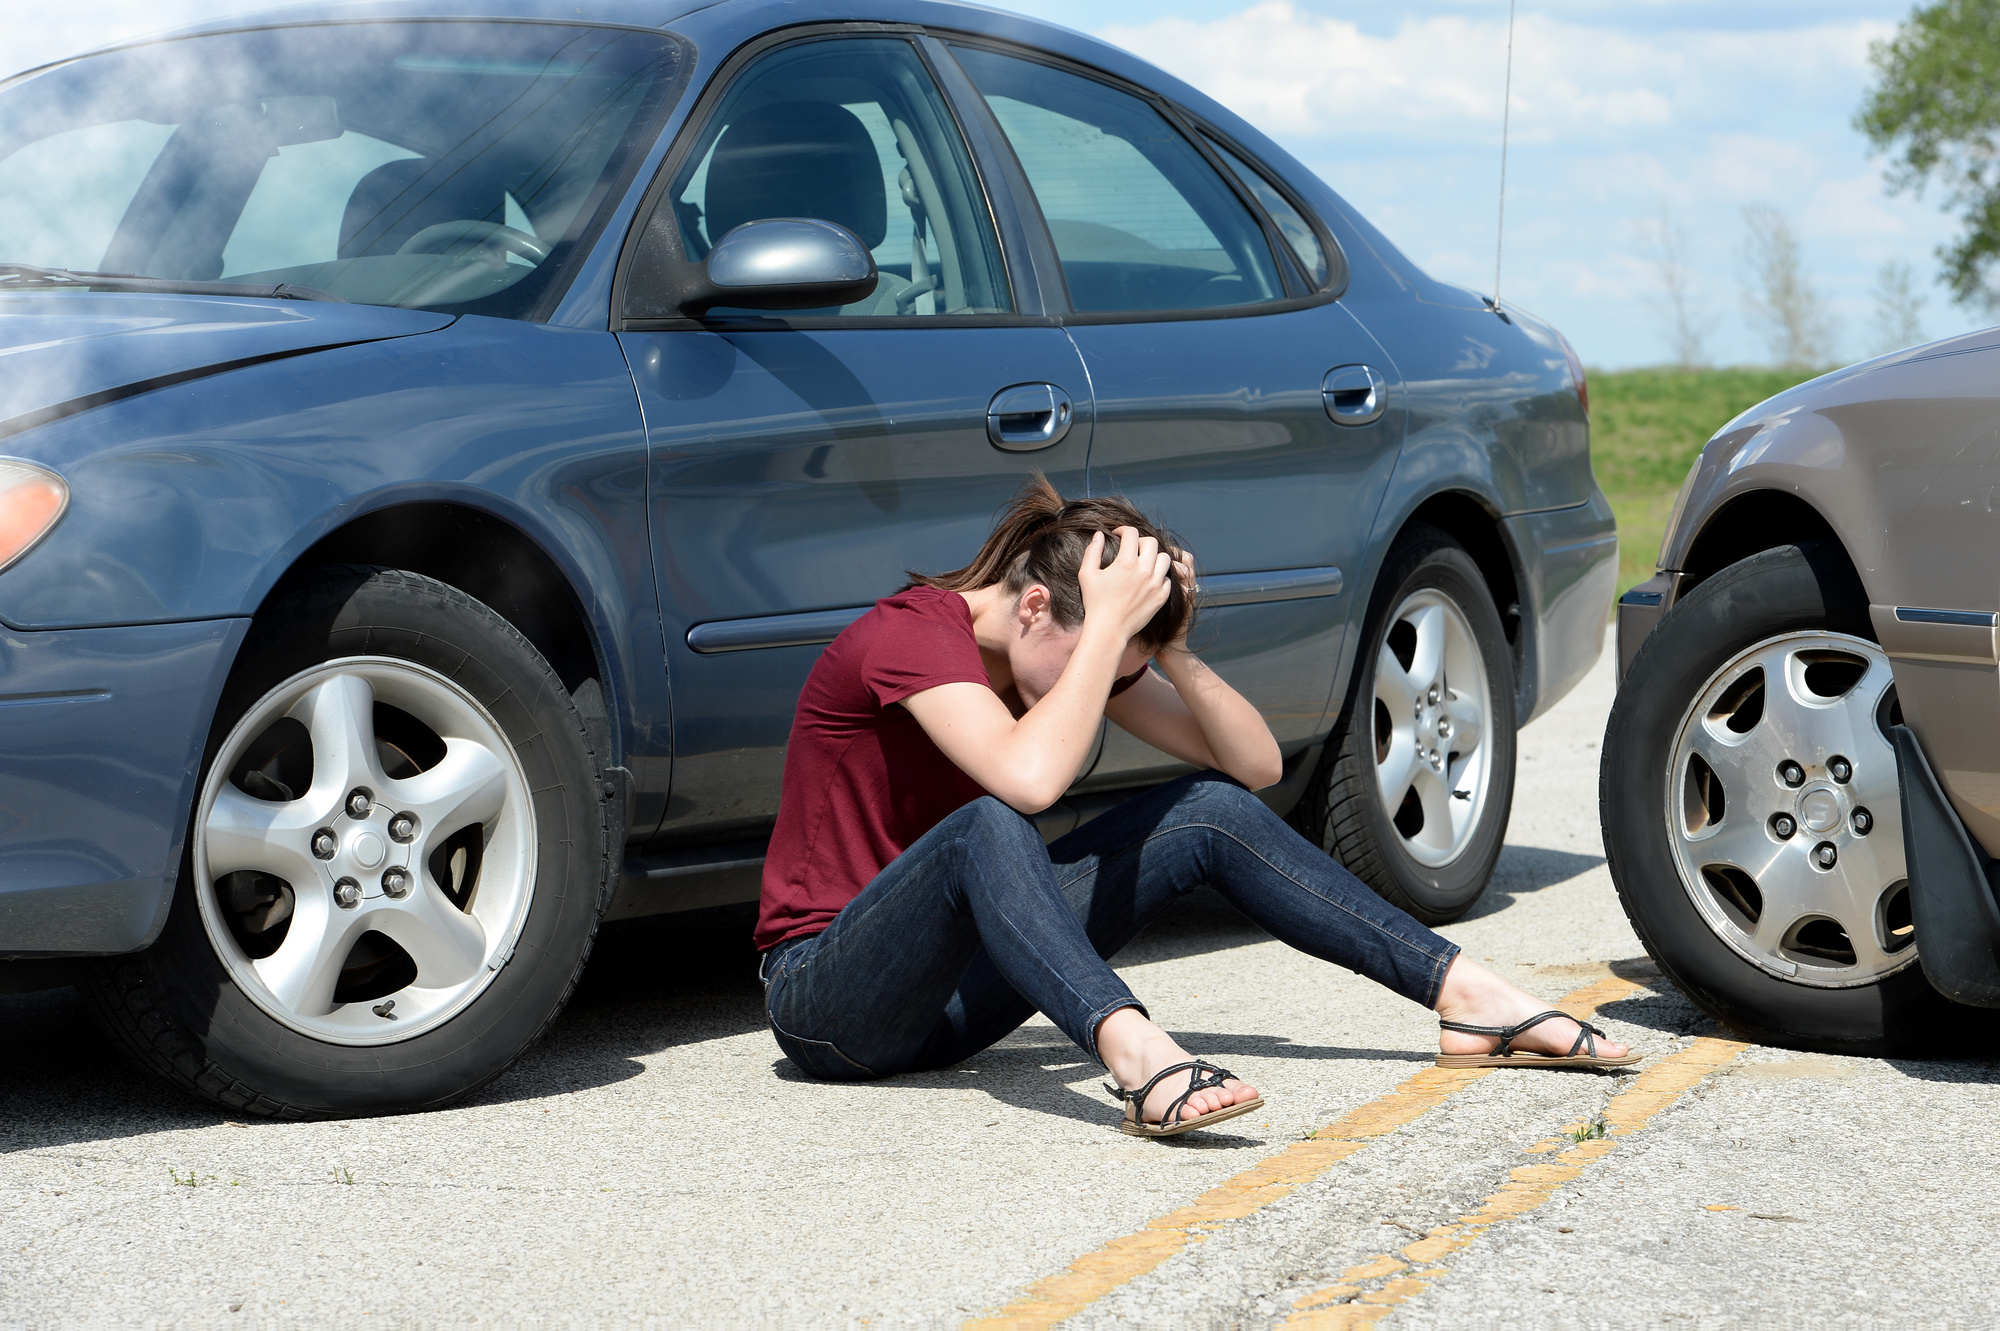 Woman on a Scene of a Car Accident